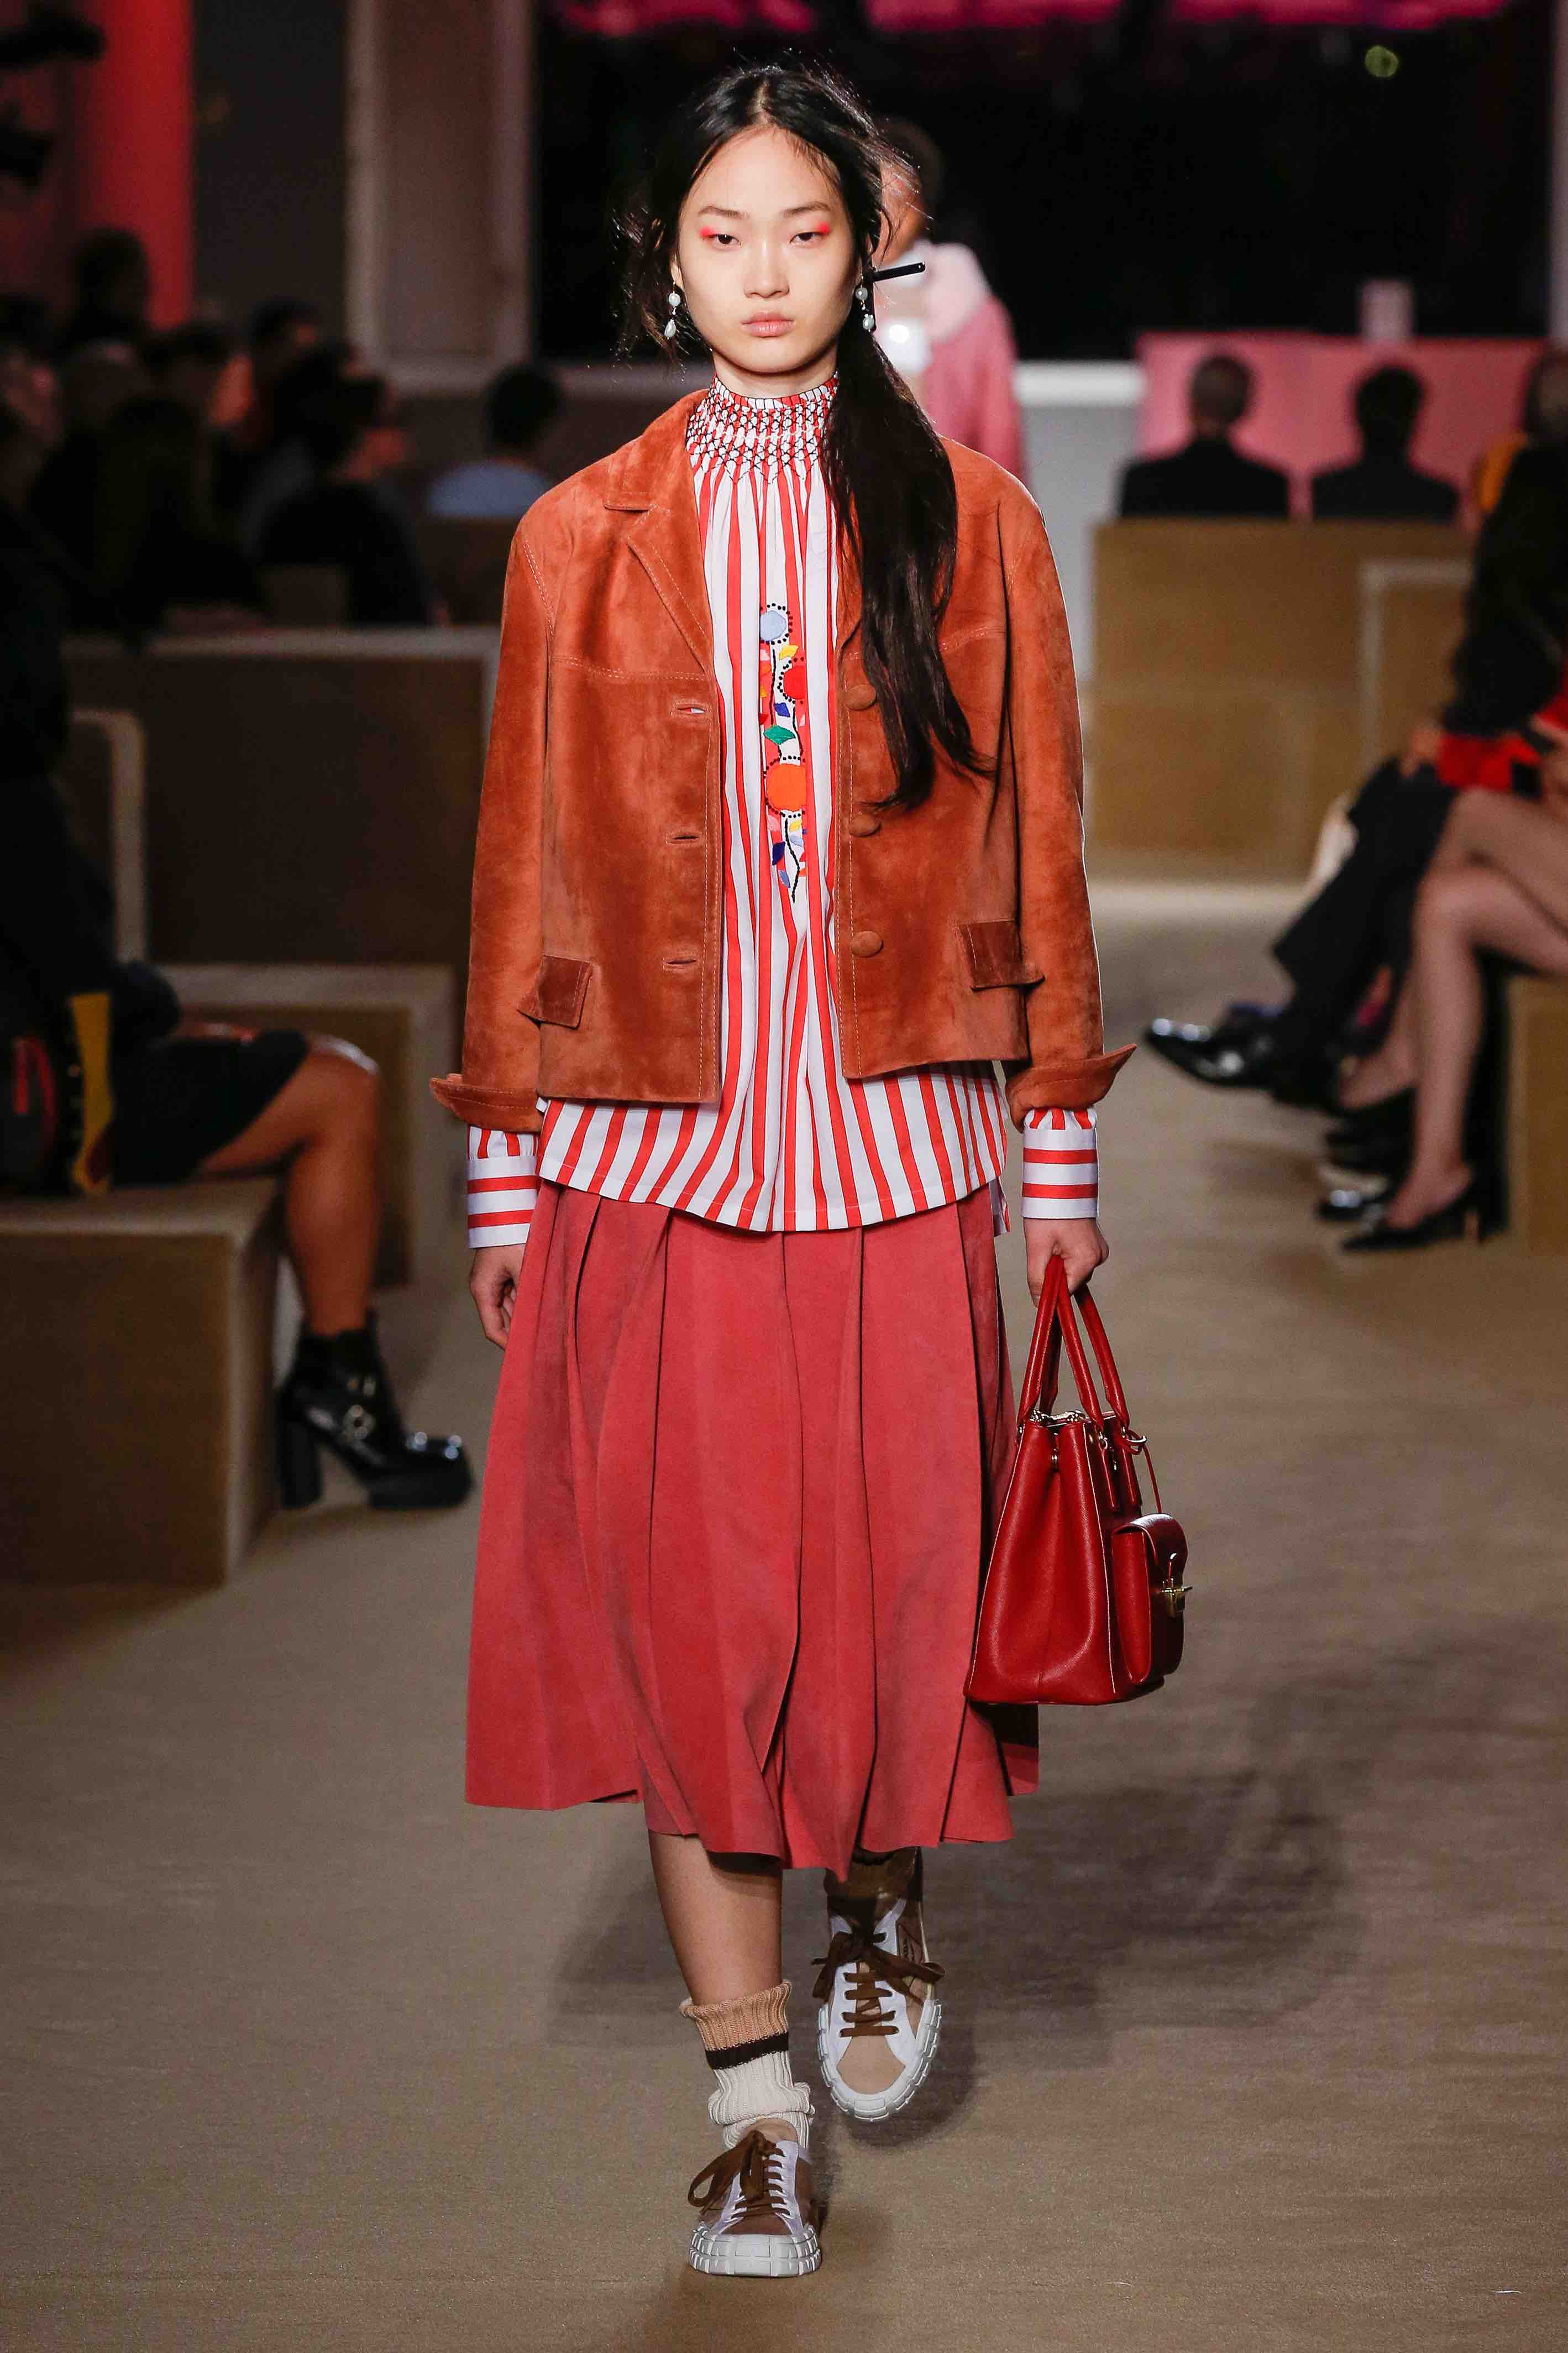 prada resort 2020 red pleated skirt